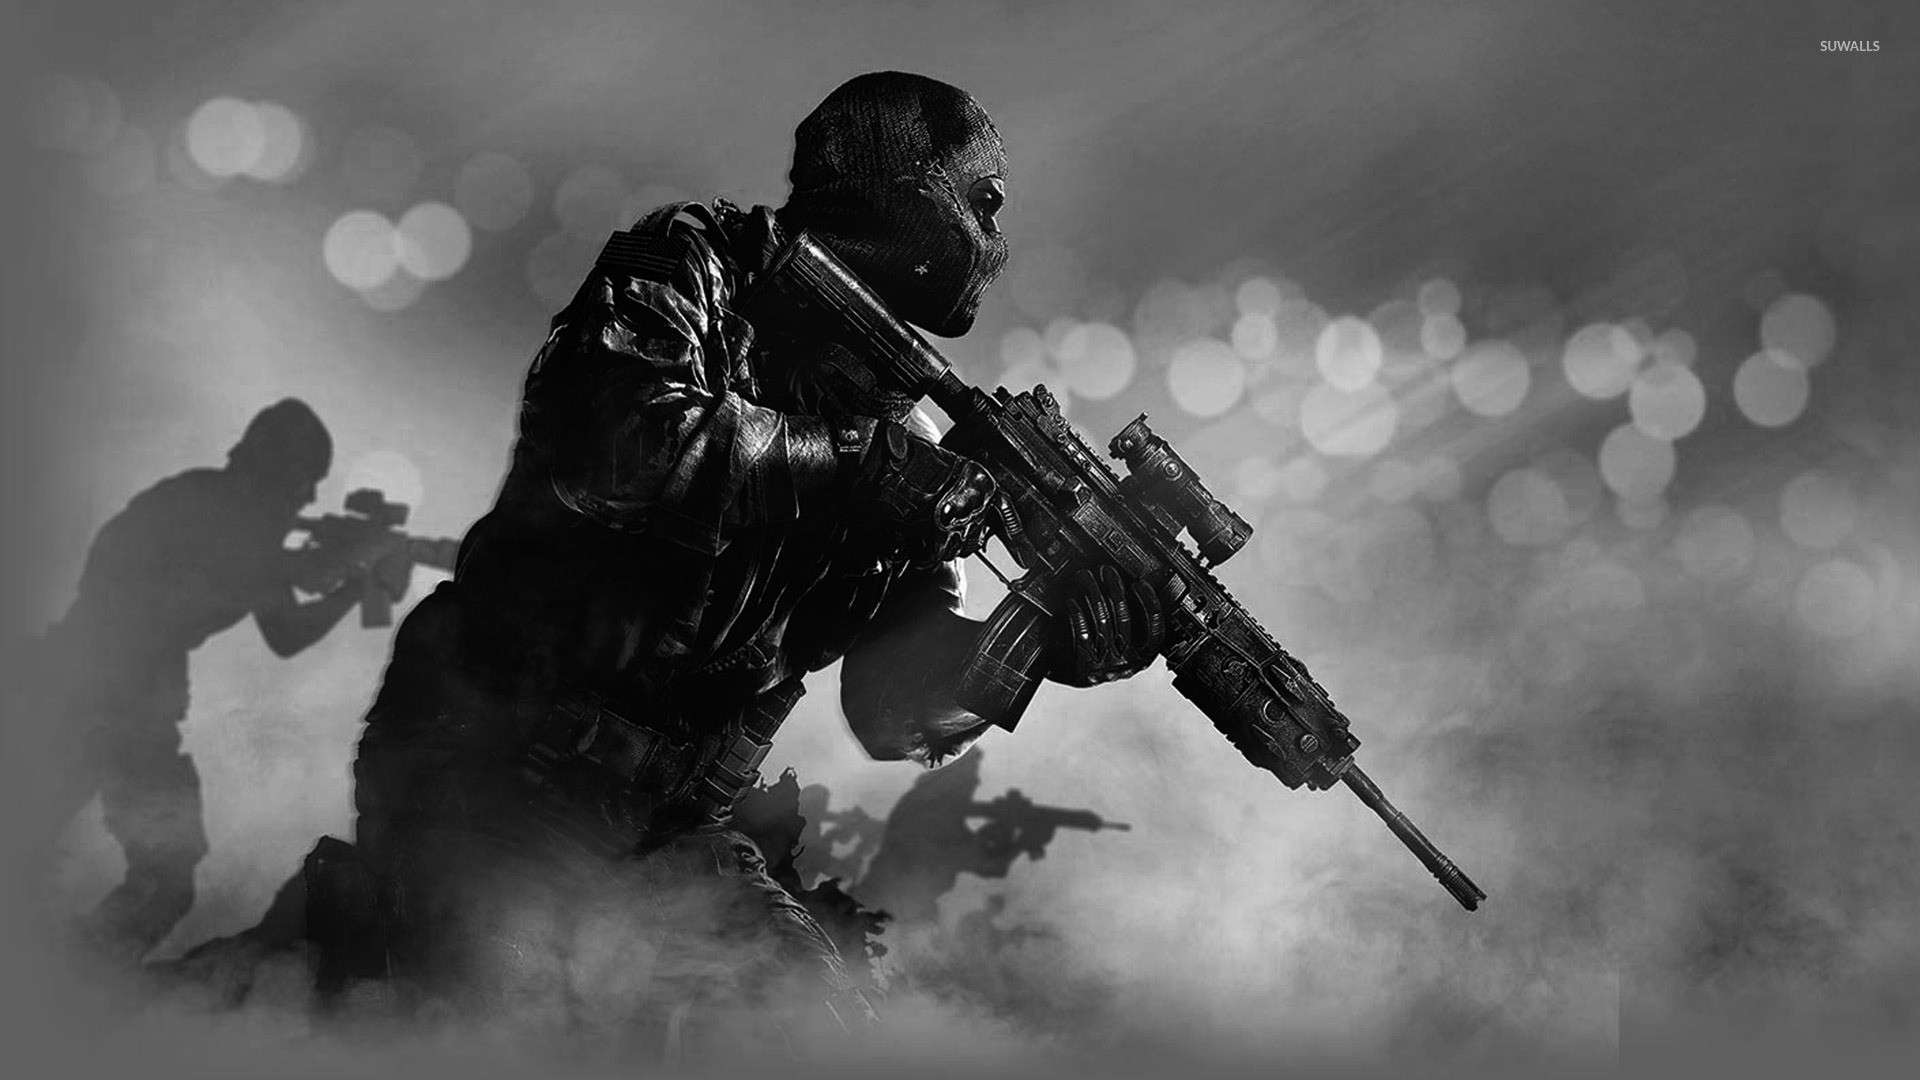 Mw2 Ghost Wallpaper 76 Pictures